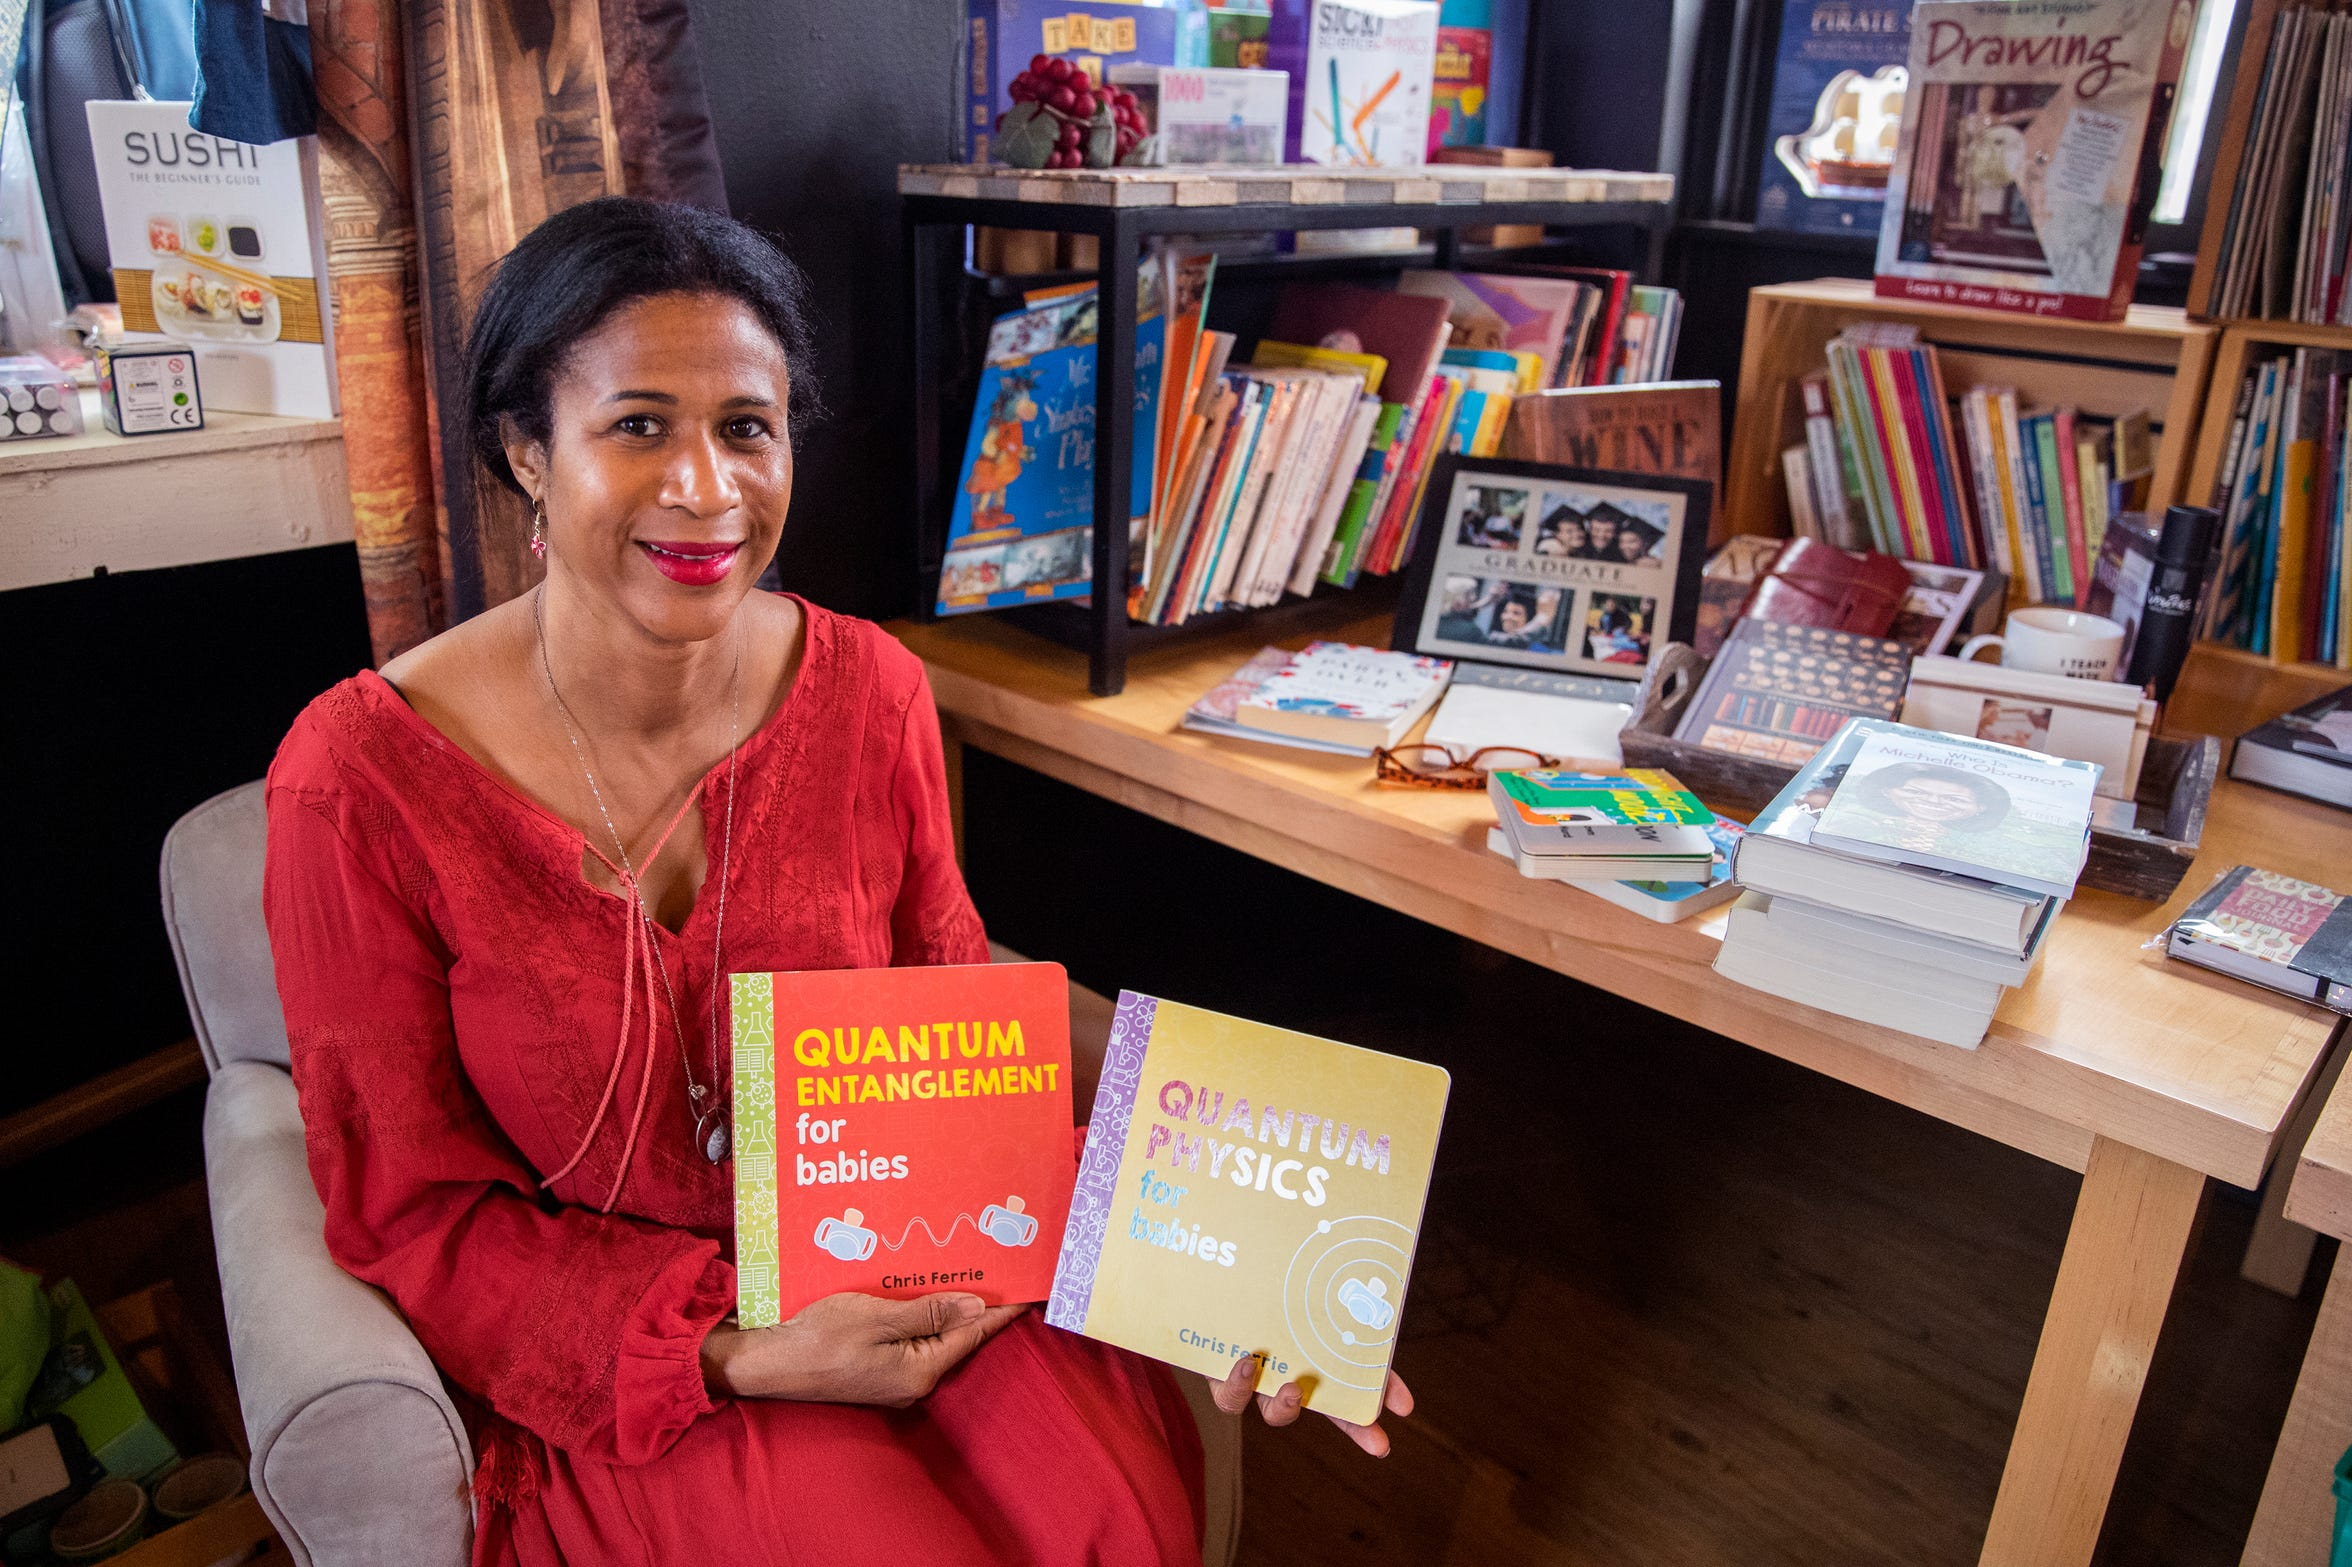 Dr. Jimie Owsley wanted her bookstore to help people be smarter. She offers books such as Quantum Physics for Babies and Quantum Entanglement for Babies.